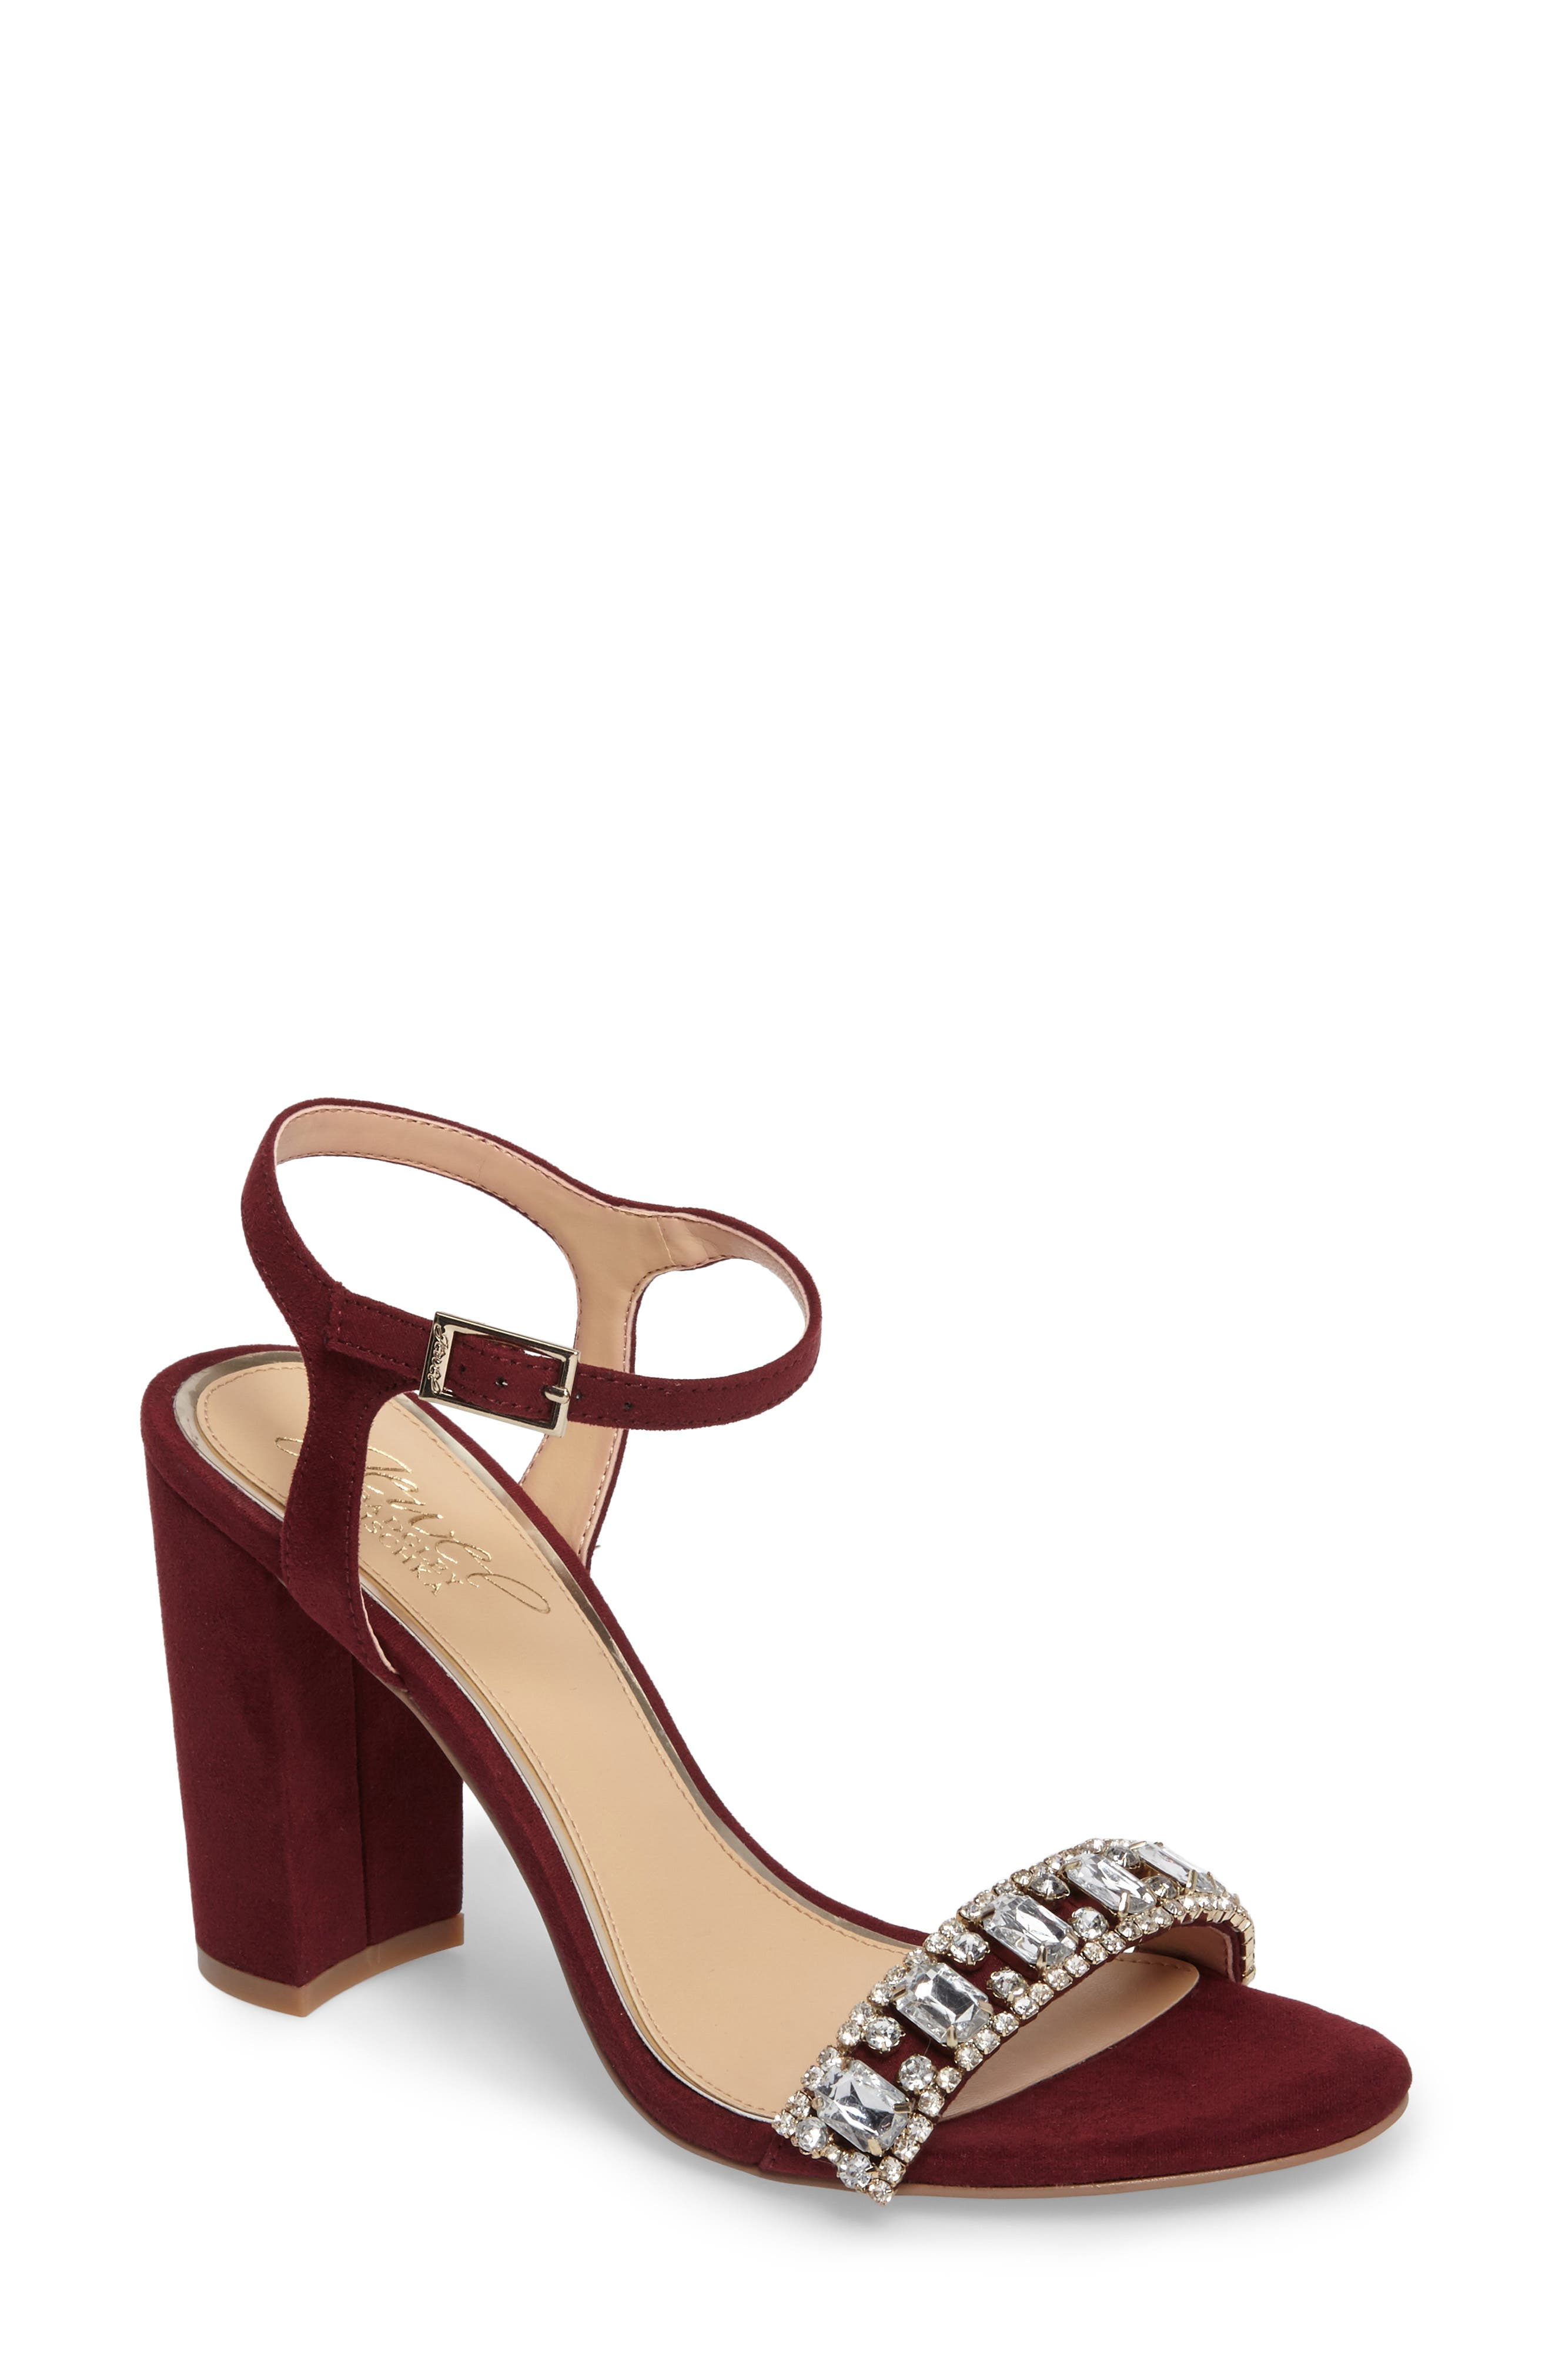 Main Image - Jewel Badgley Mischka Hendricks Embellished Block Heel Sandal (Women)